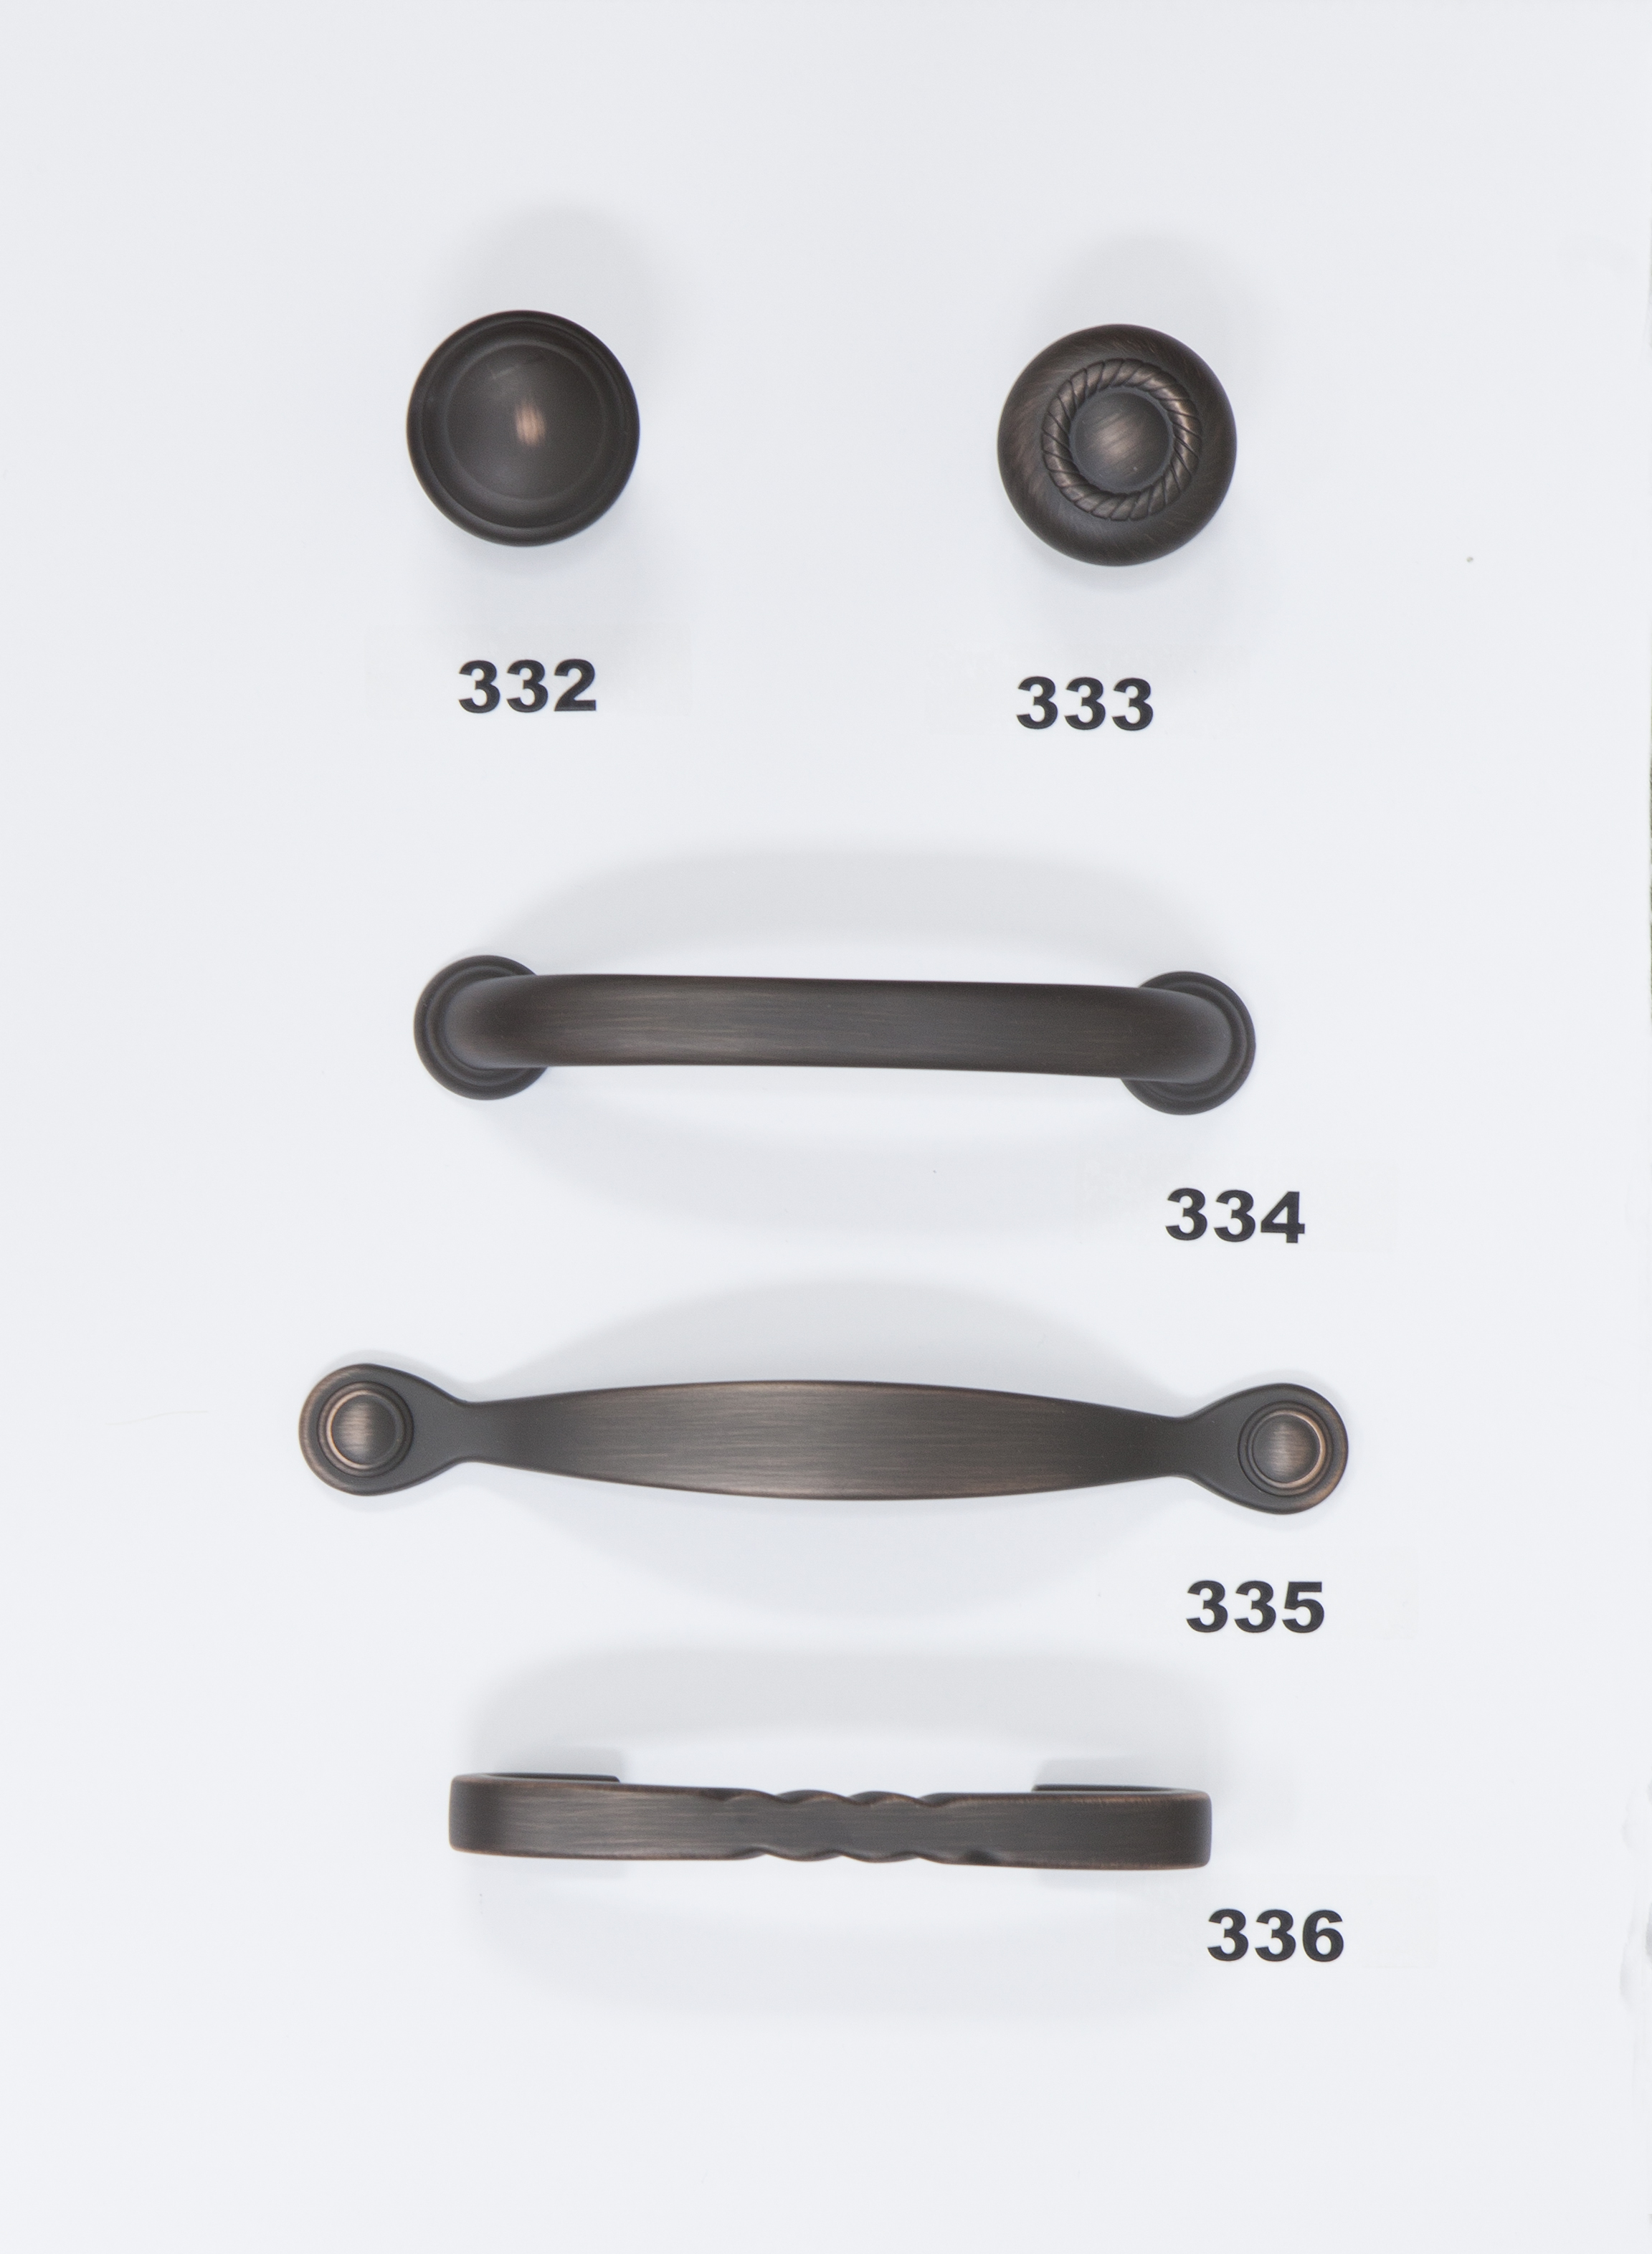 "#332 - Knob - Oil Rubbed Bronze  #333 - Knob - Oil Rubbed Bronze  #334 - 3 3/4"" Center - Oil Rubbed Bronze  #335 - 3"" Center - Oil Rubbed Bronze  #336 - 3"" Center - Oil Rubbed Bronze"